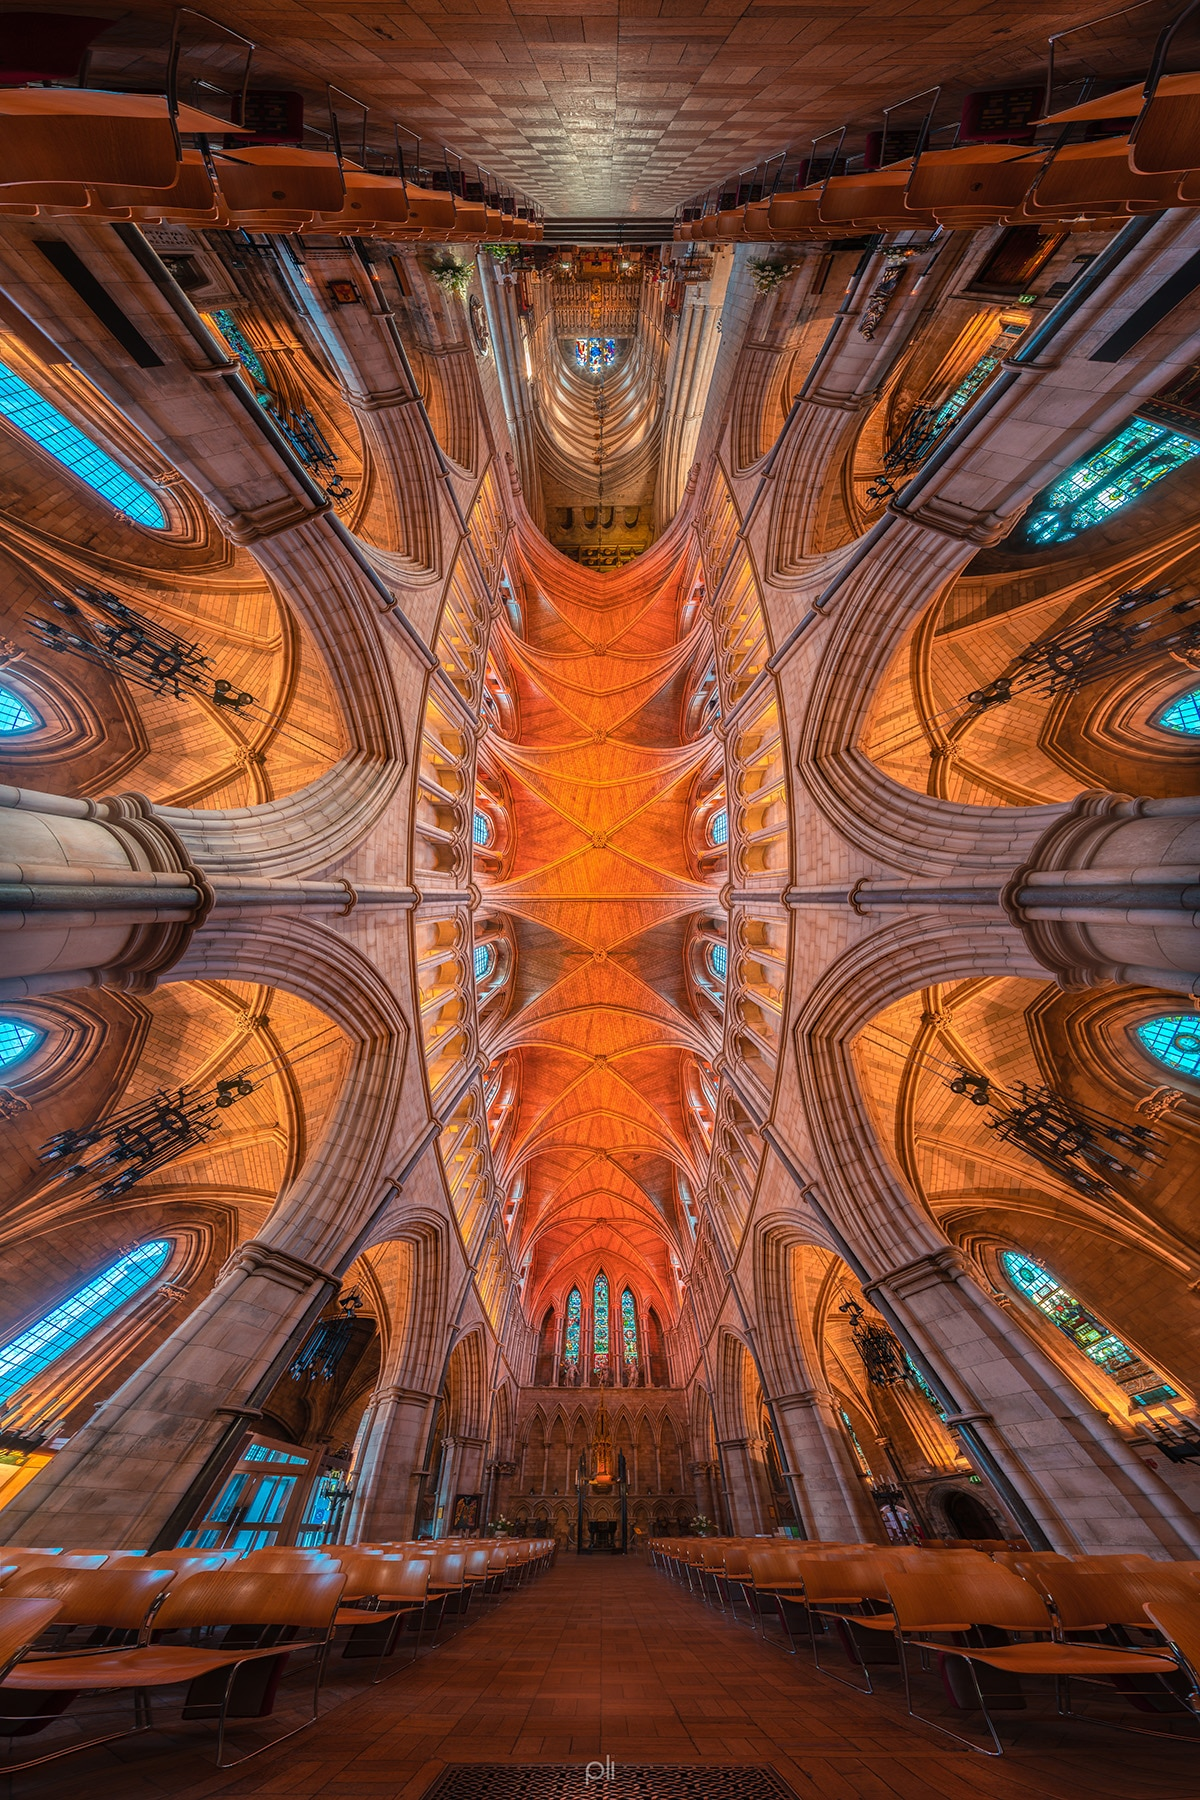 Panoramic Architecture Photography by Peter Li